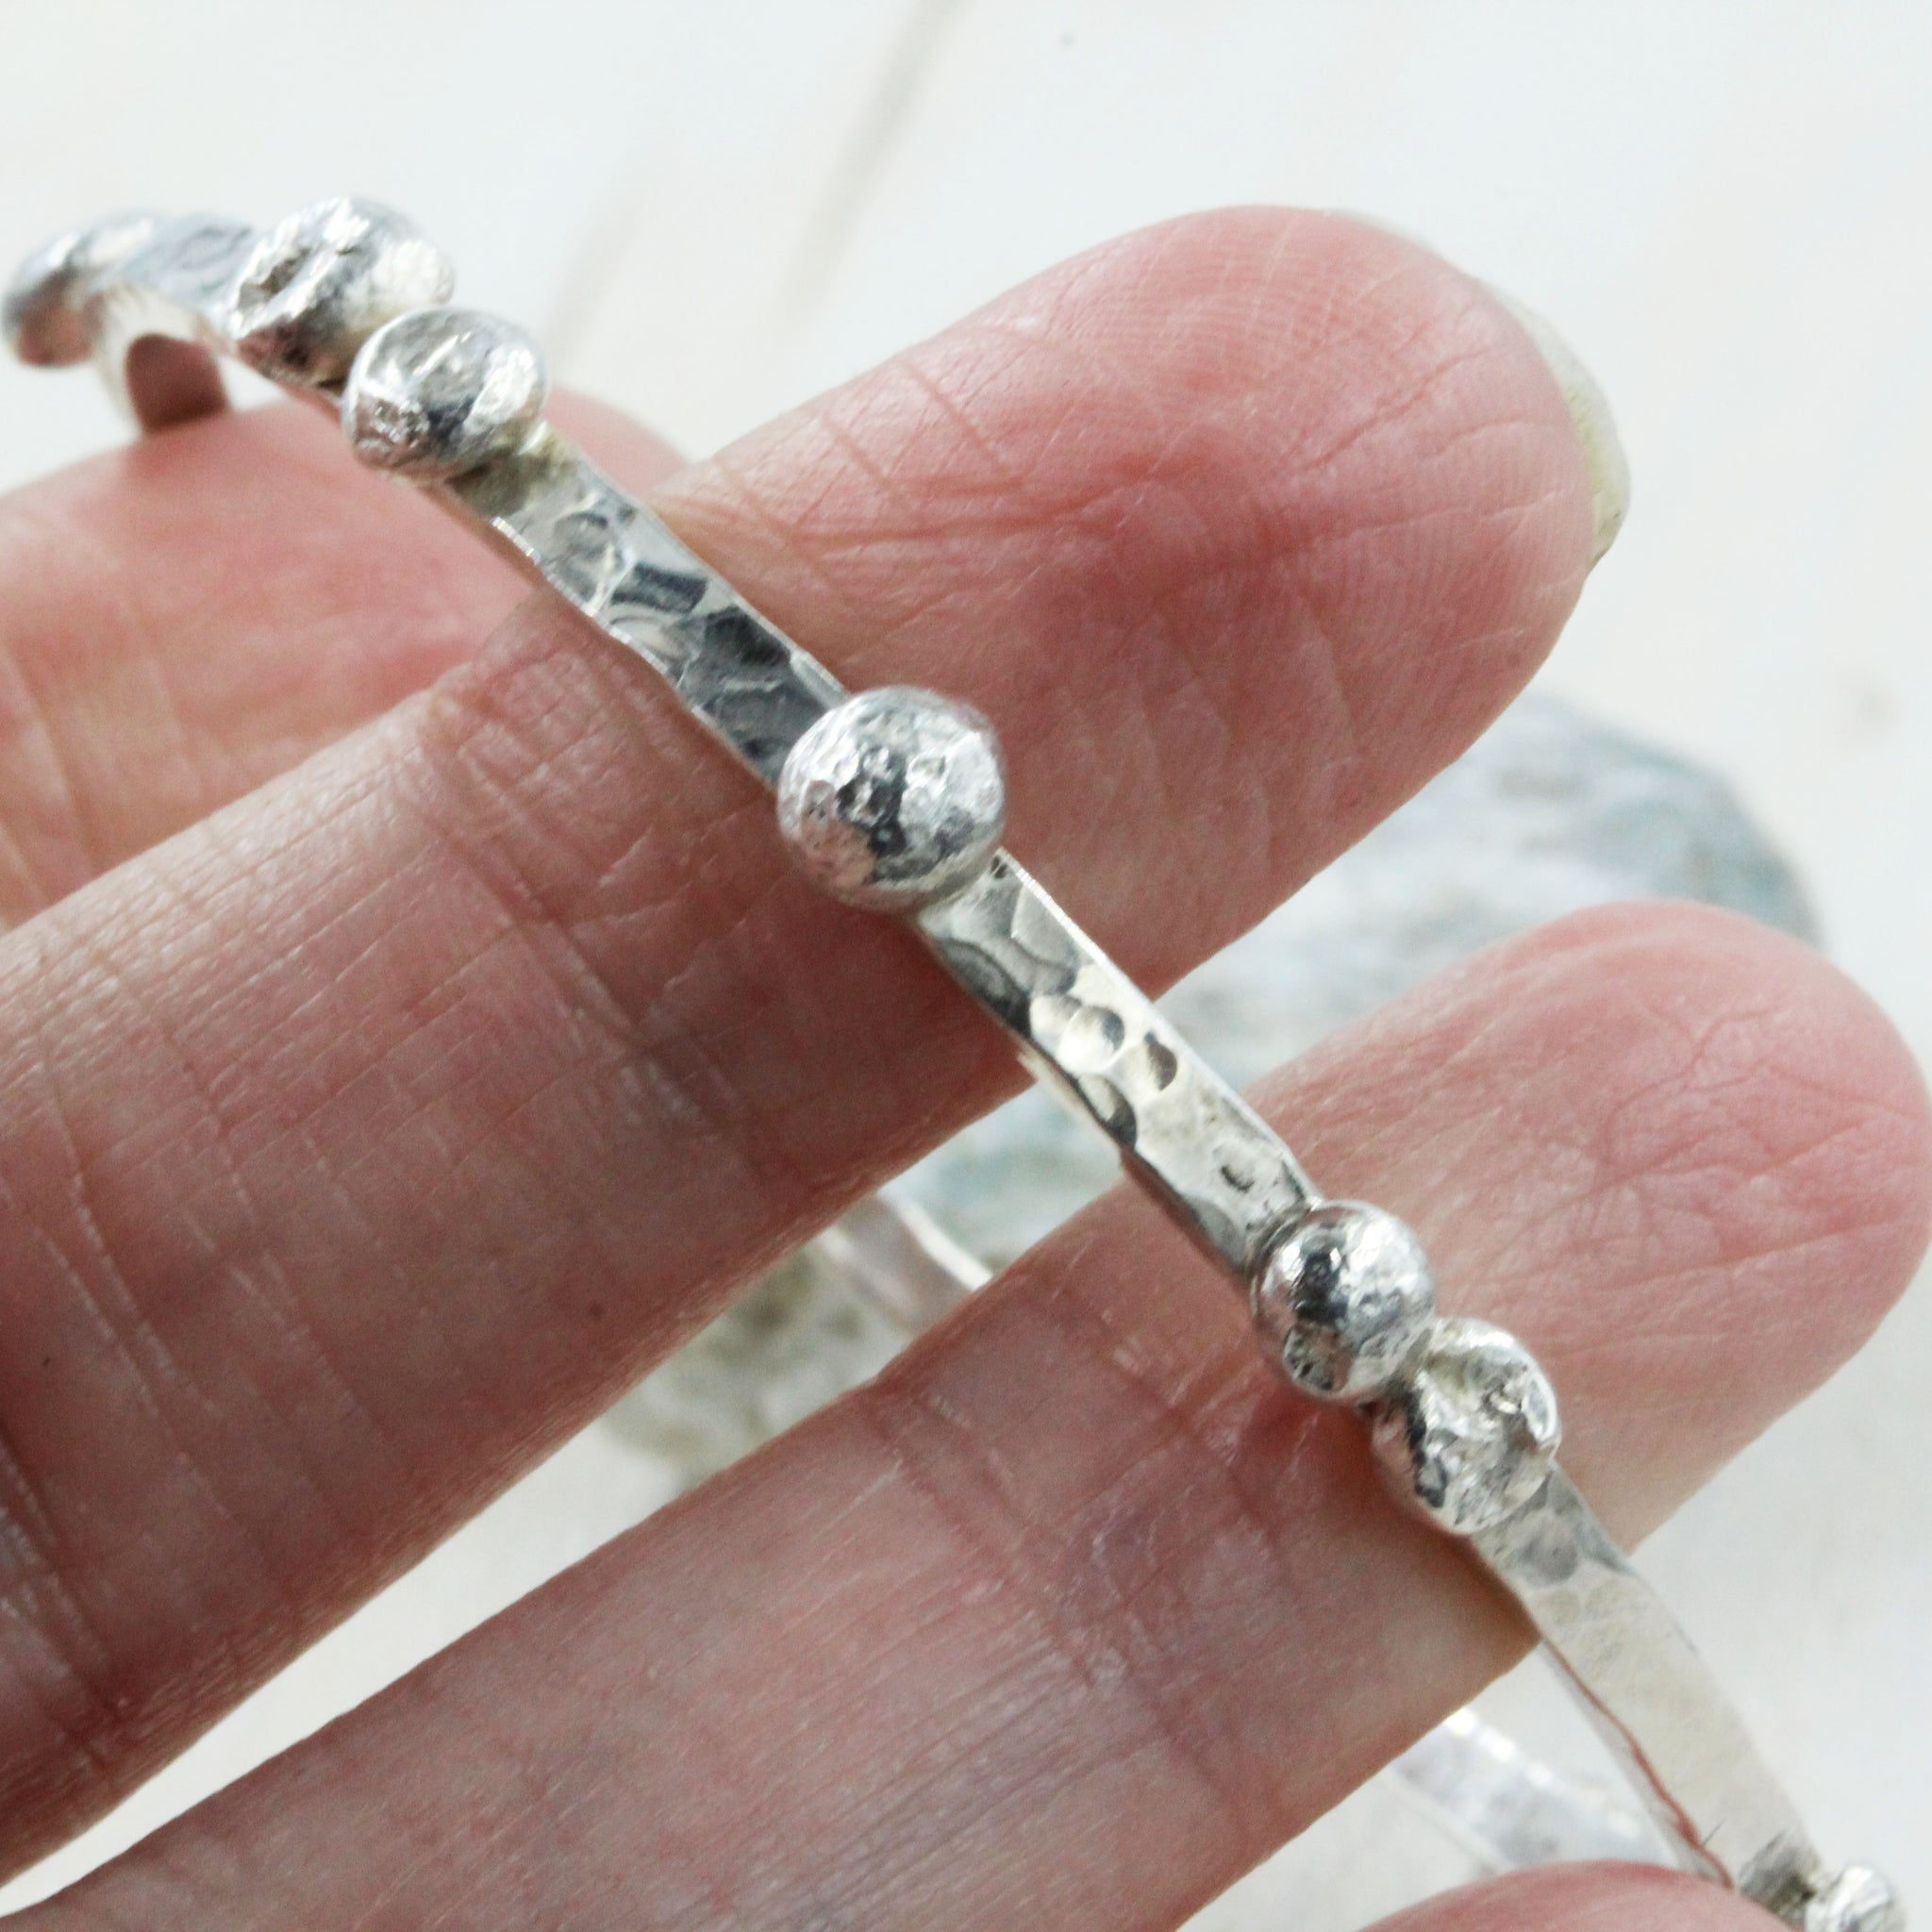 Handcrafted Pebbles on the Beach Bangle, inspired by the pebbley shorelines of Suffolk and handmade in Sterling Silver